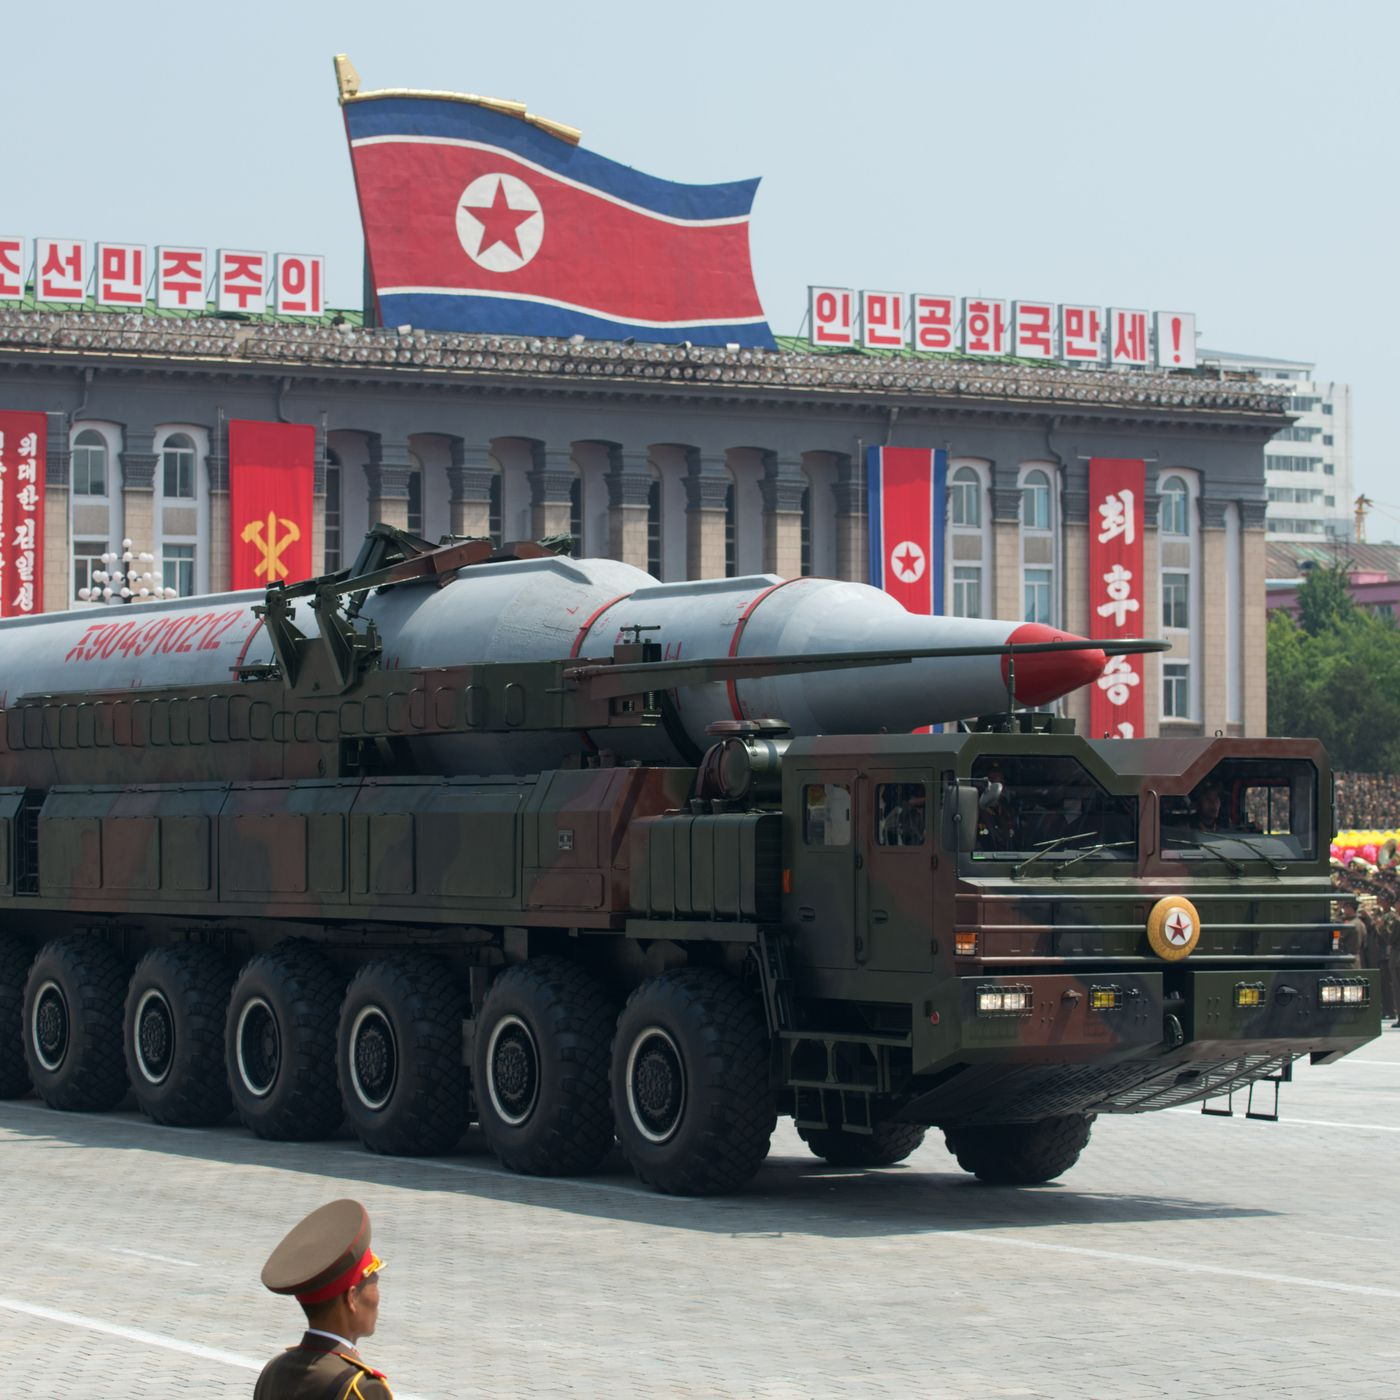 The North Korean military threat to America and its allies, explained - Vox